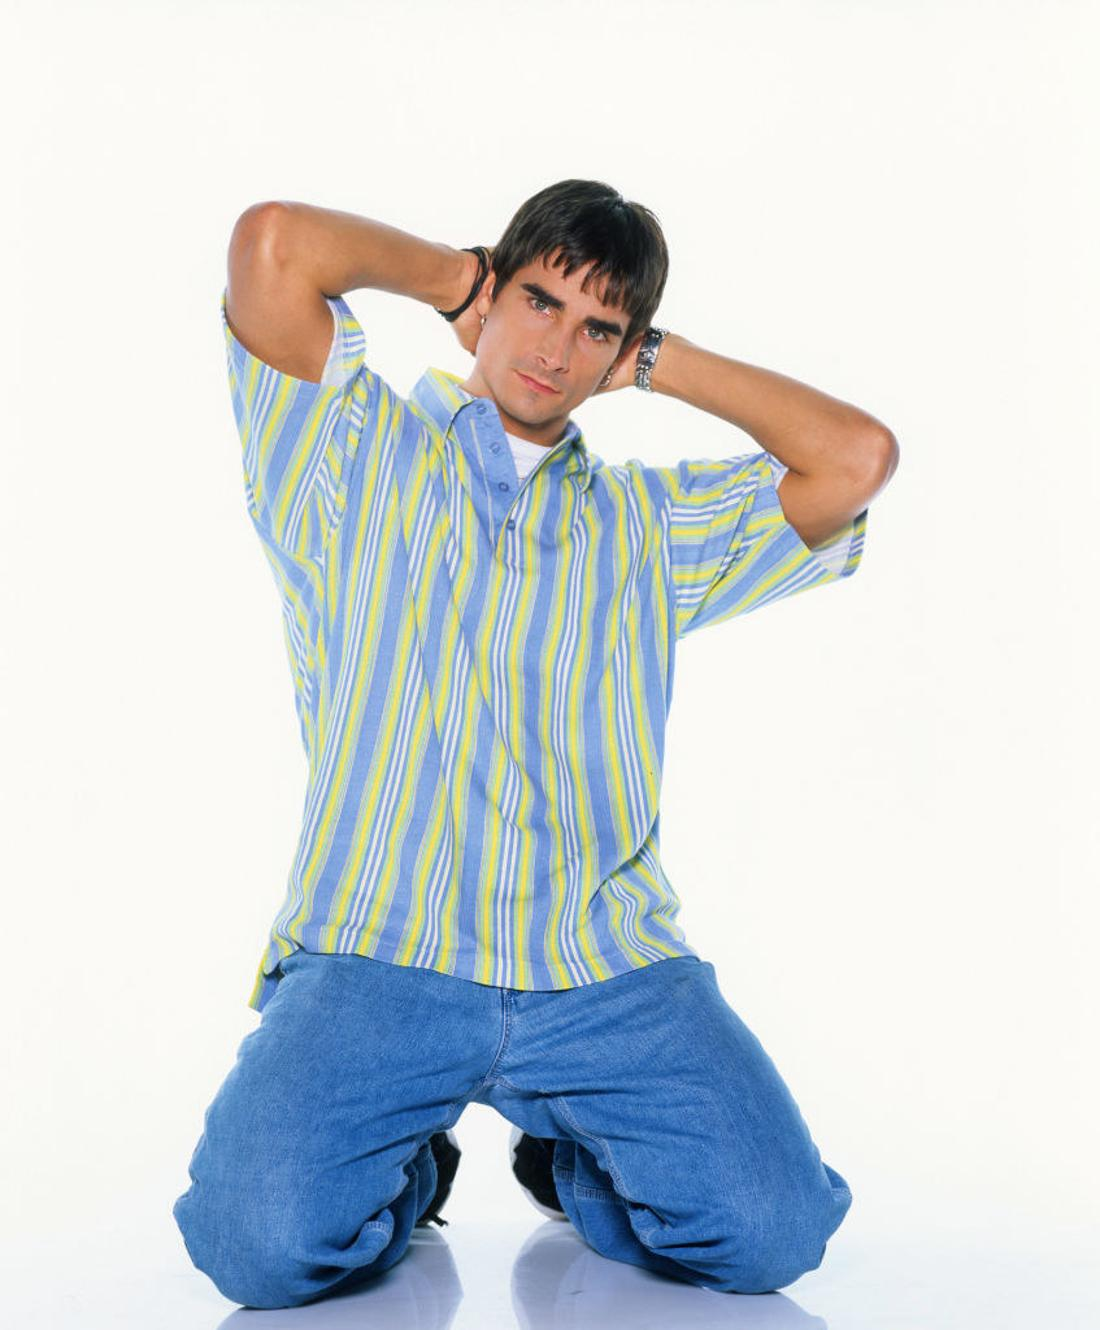 Kevin Richardson on his knees with his hands on his head posing seductively